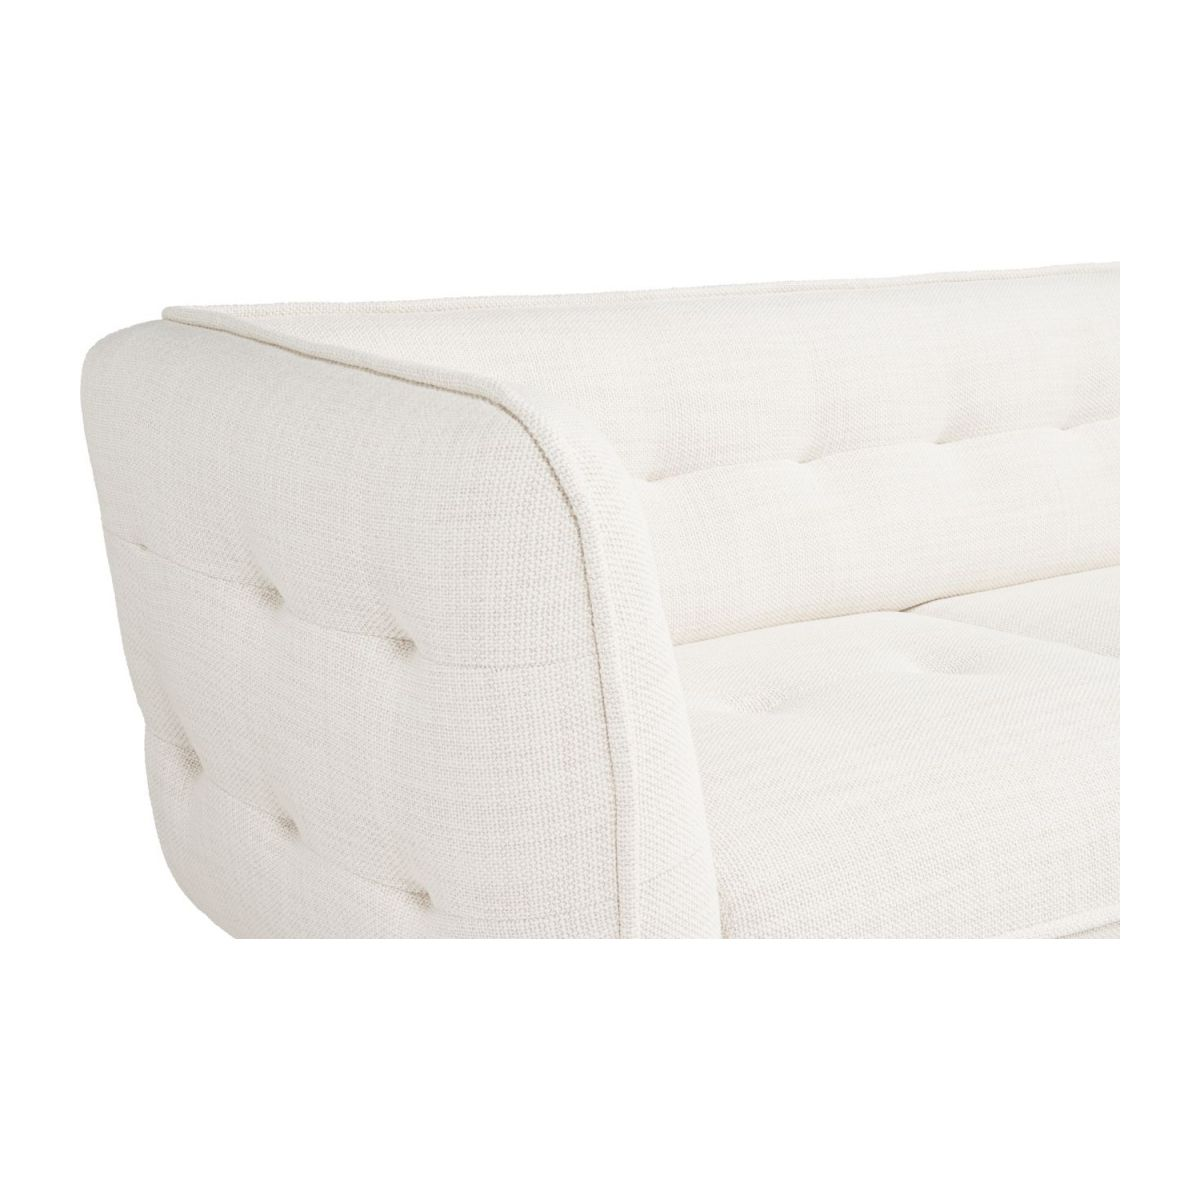 2 seater sofa in Fasoli fabric, snow white and oak legs n°5